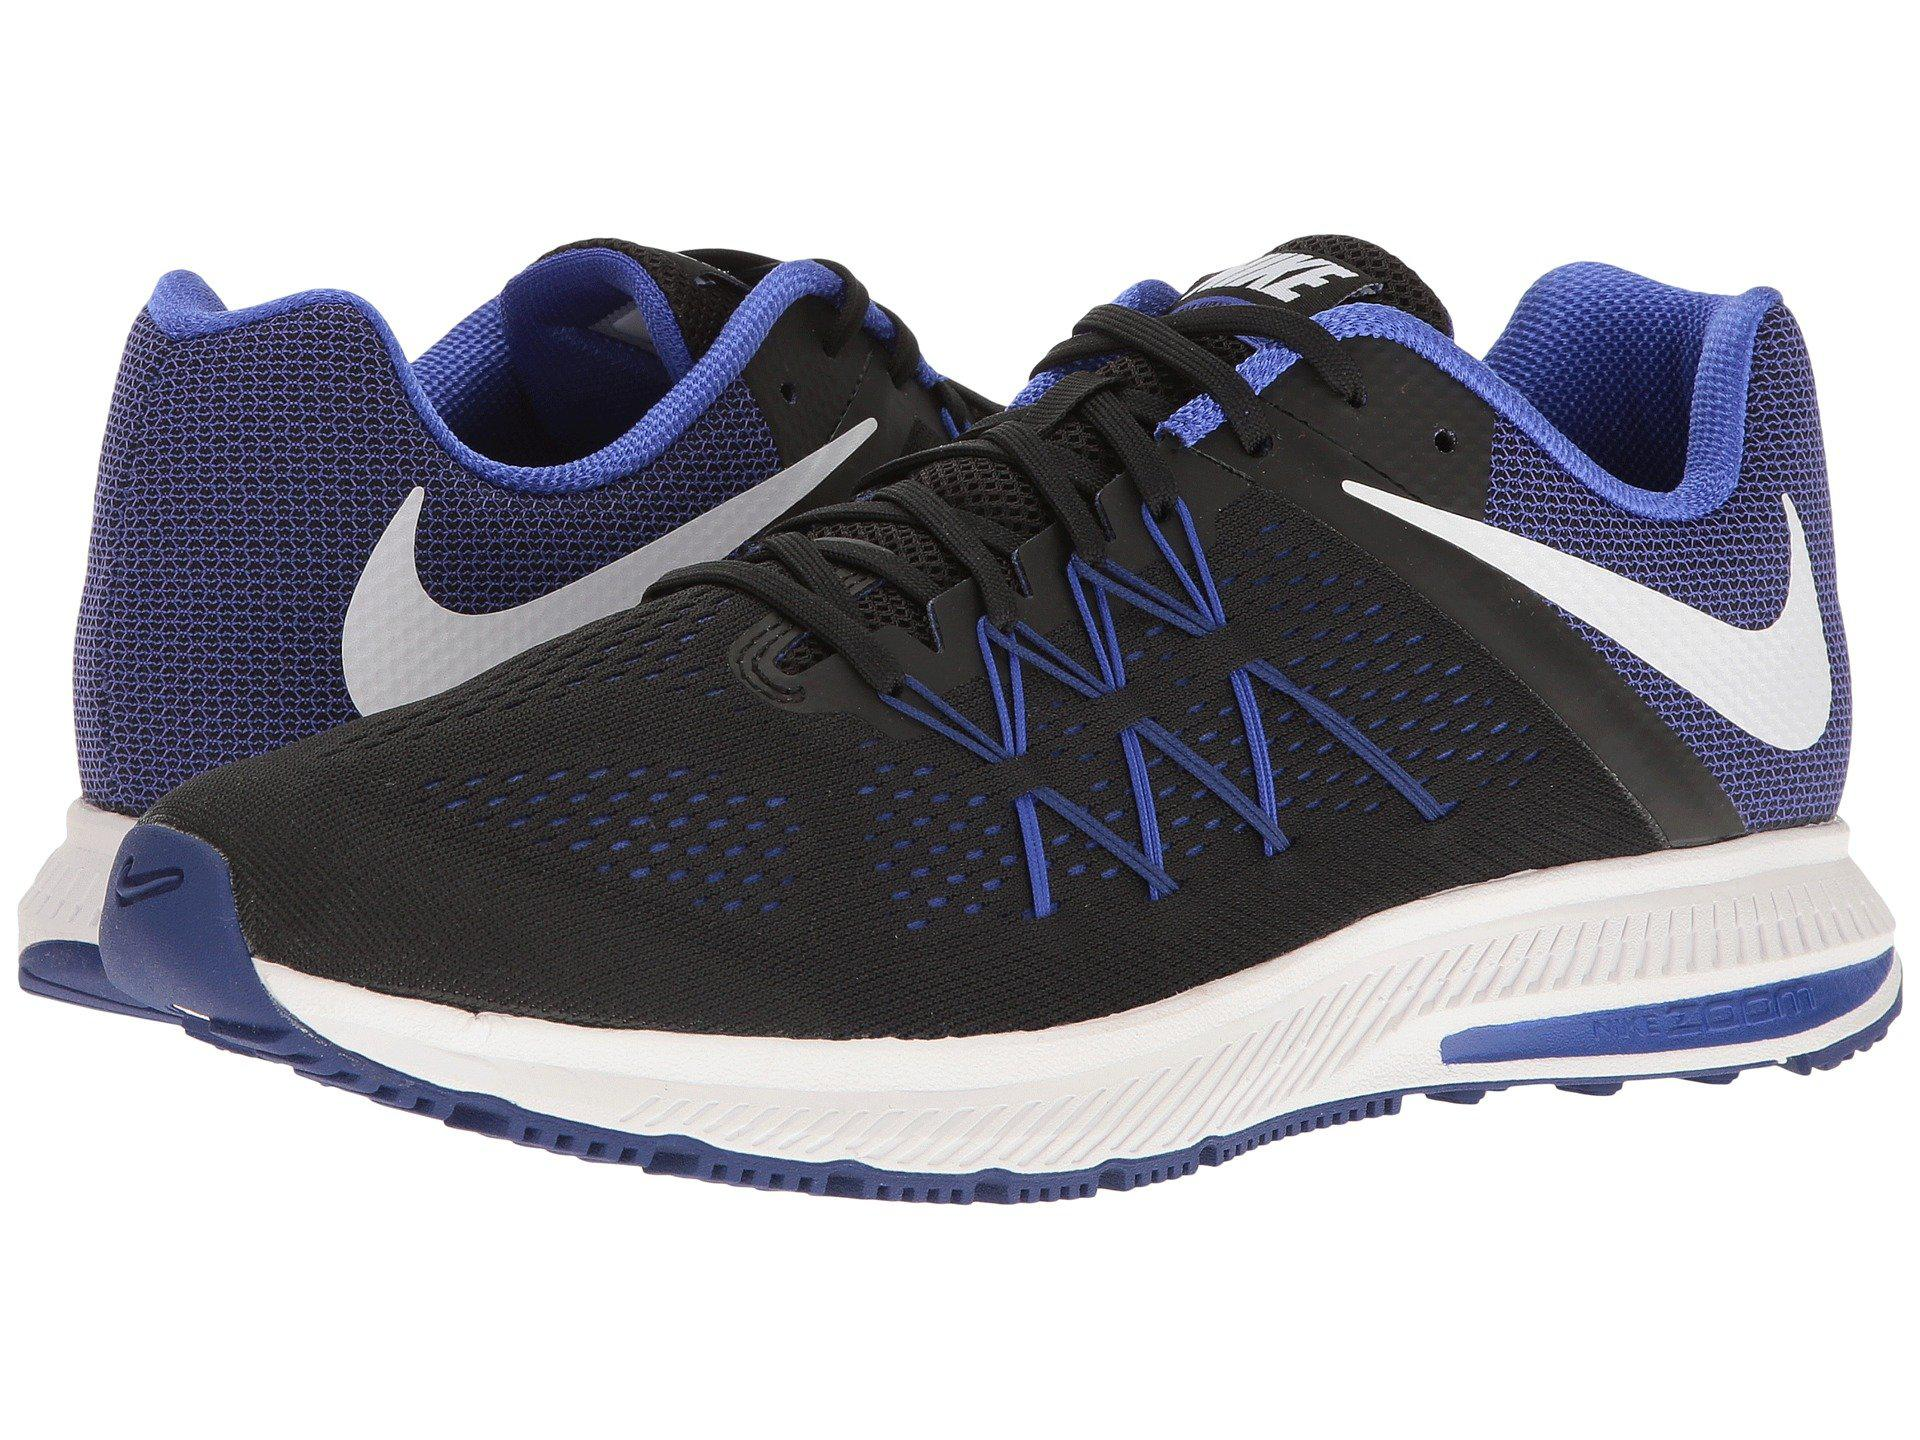 quality design d4160 5a6da new style lyst nike zoom winflo 3 in blue for men 338fa de0c1